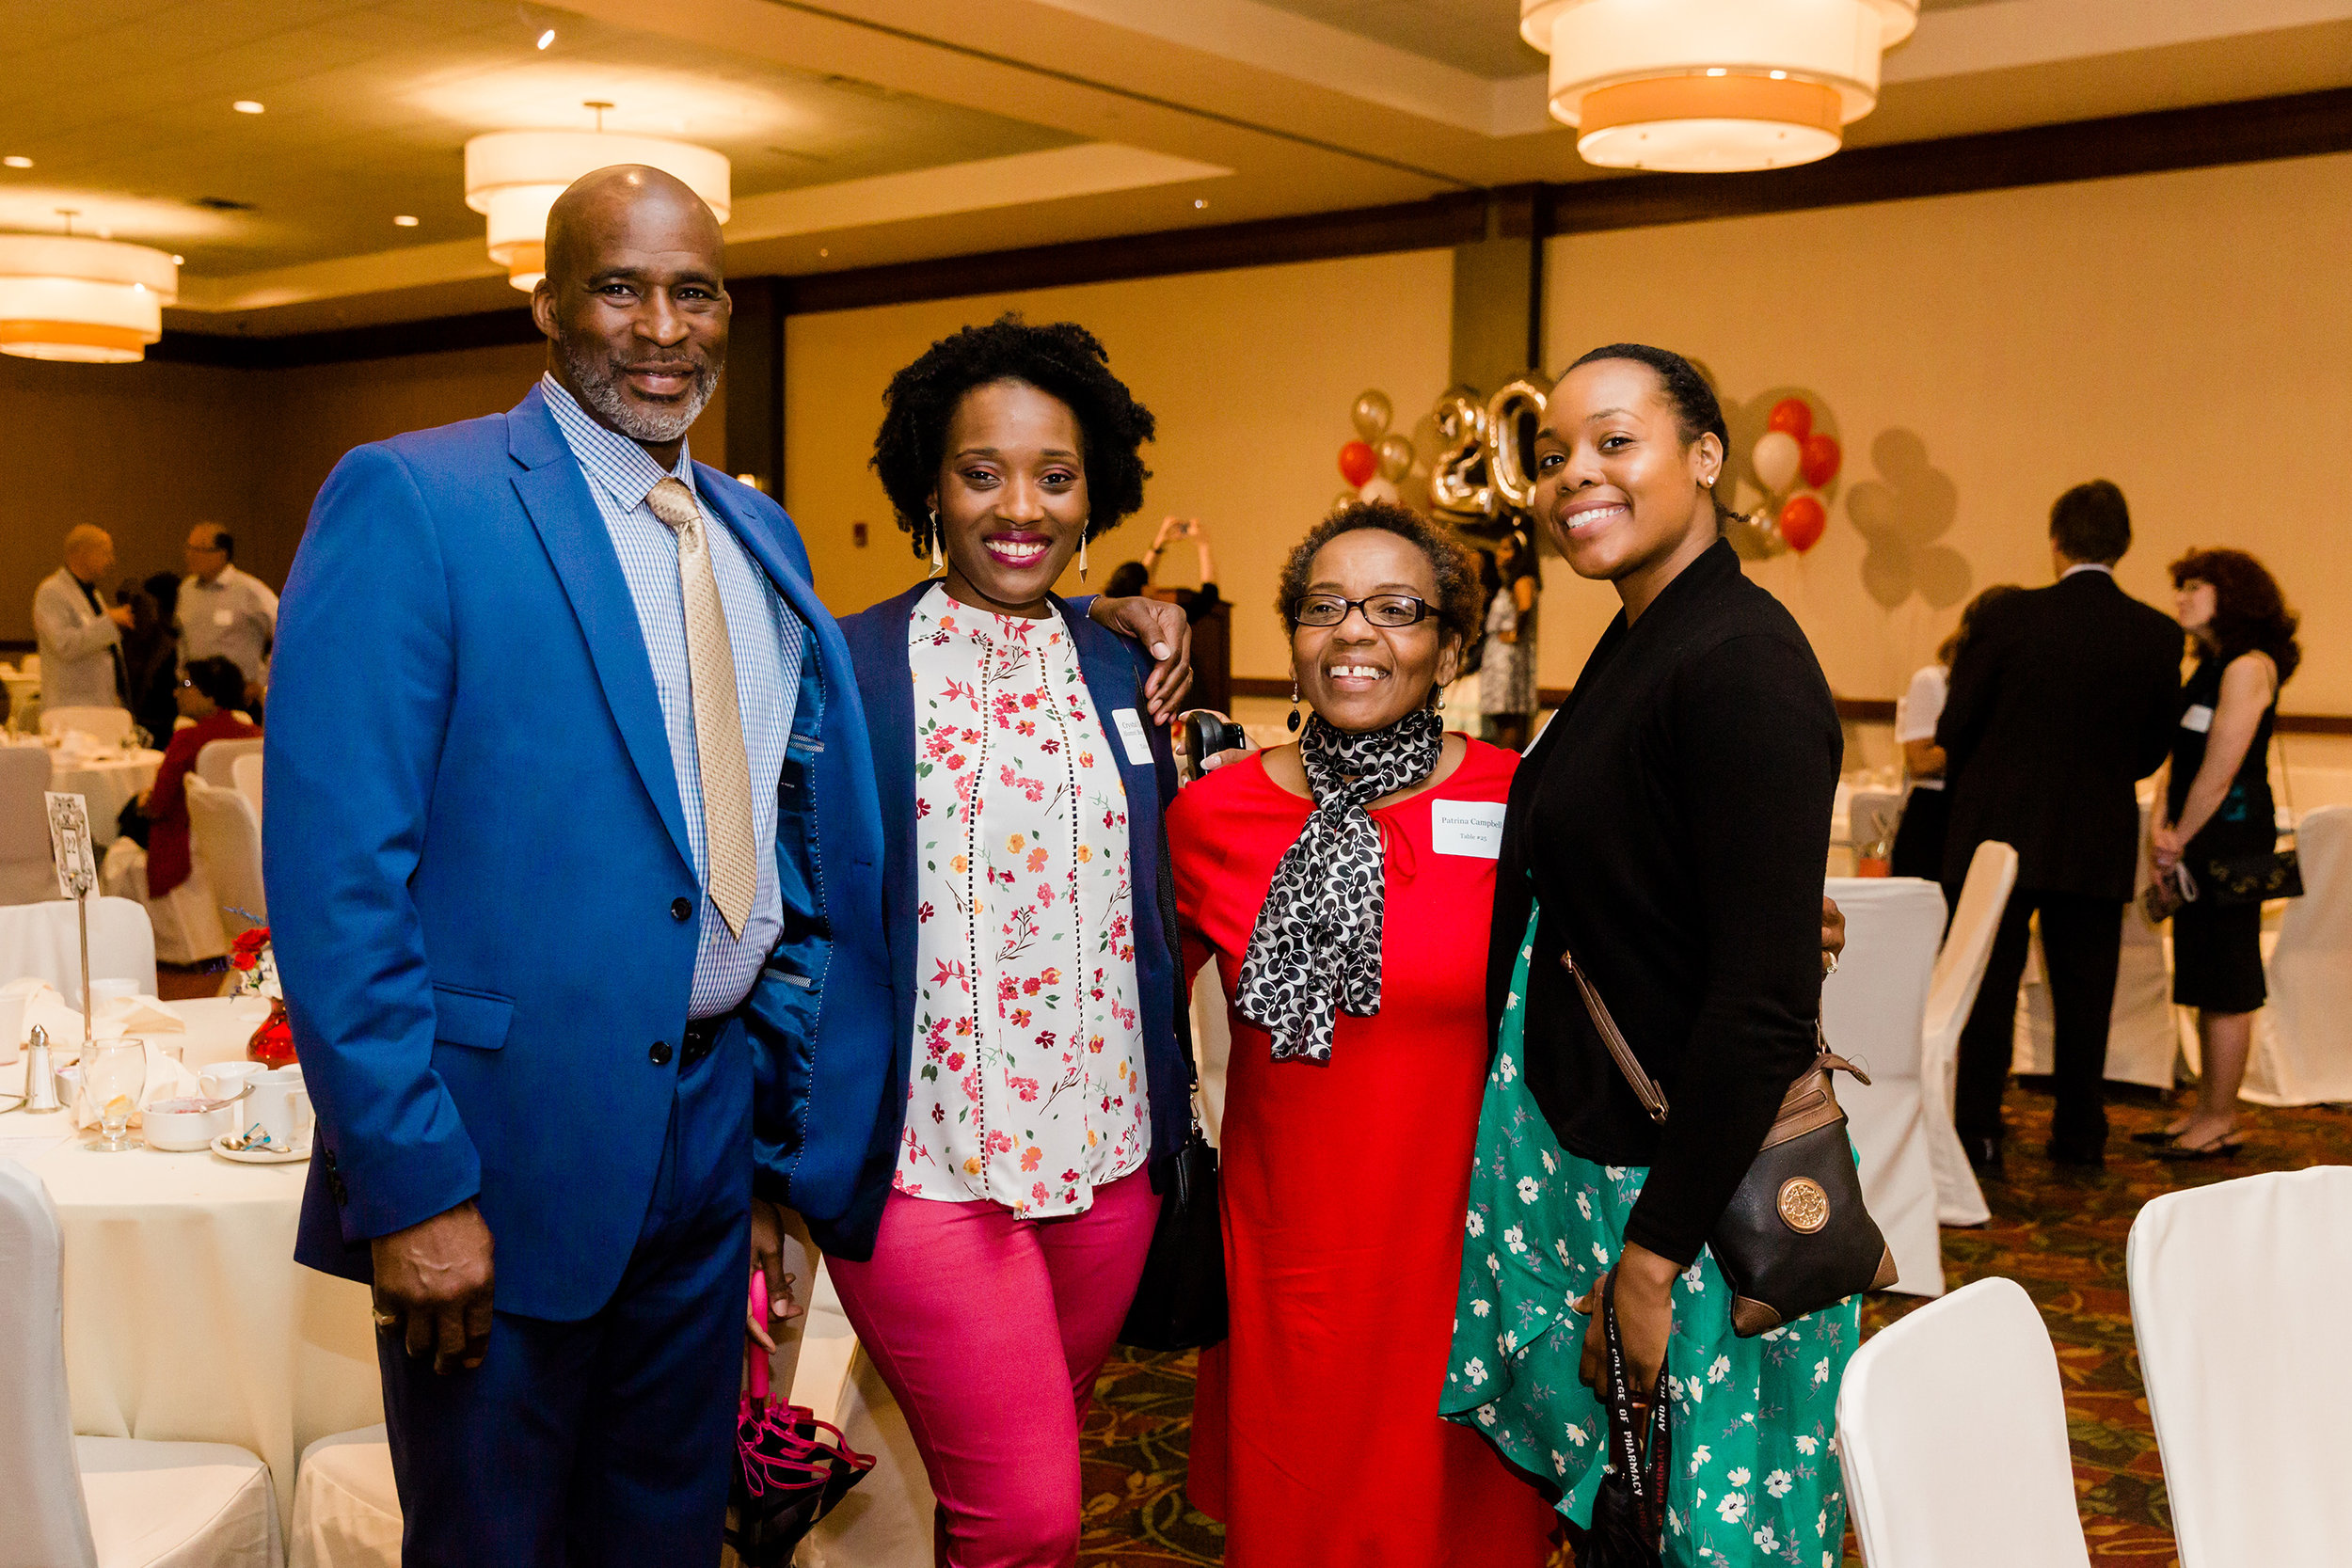 Alumni Board member Crystal Campbell and her guests